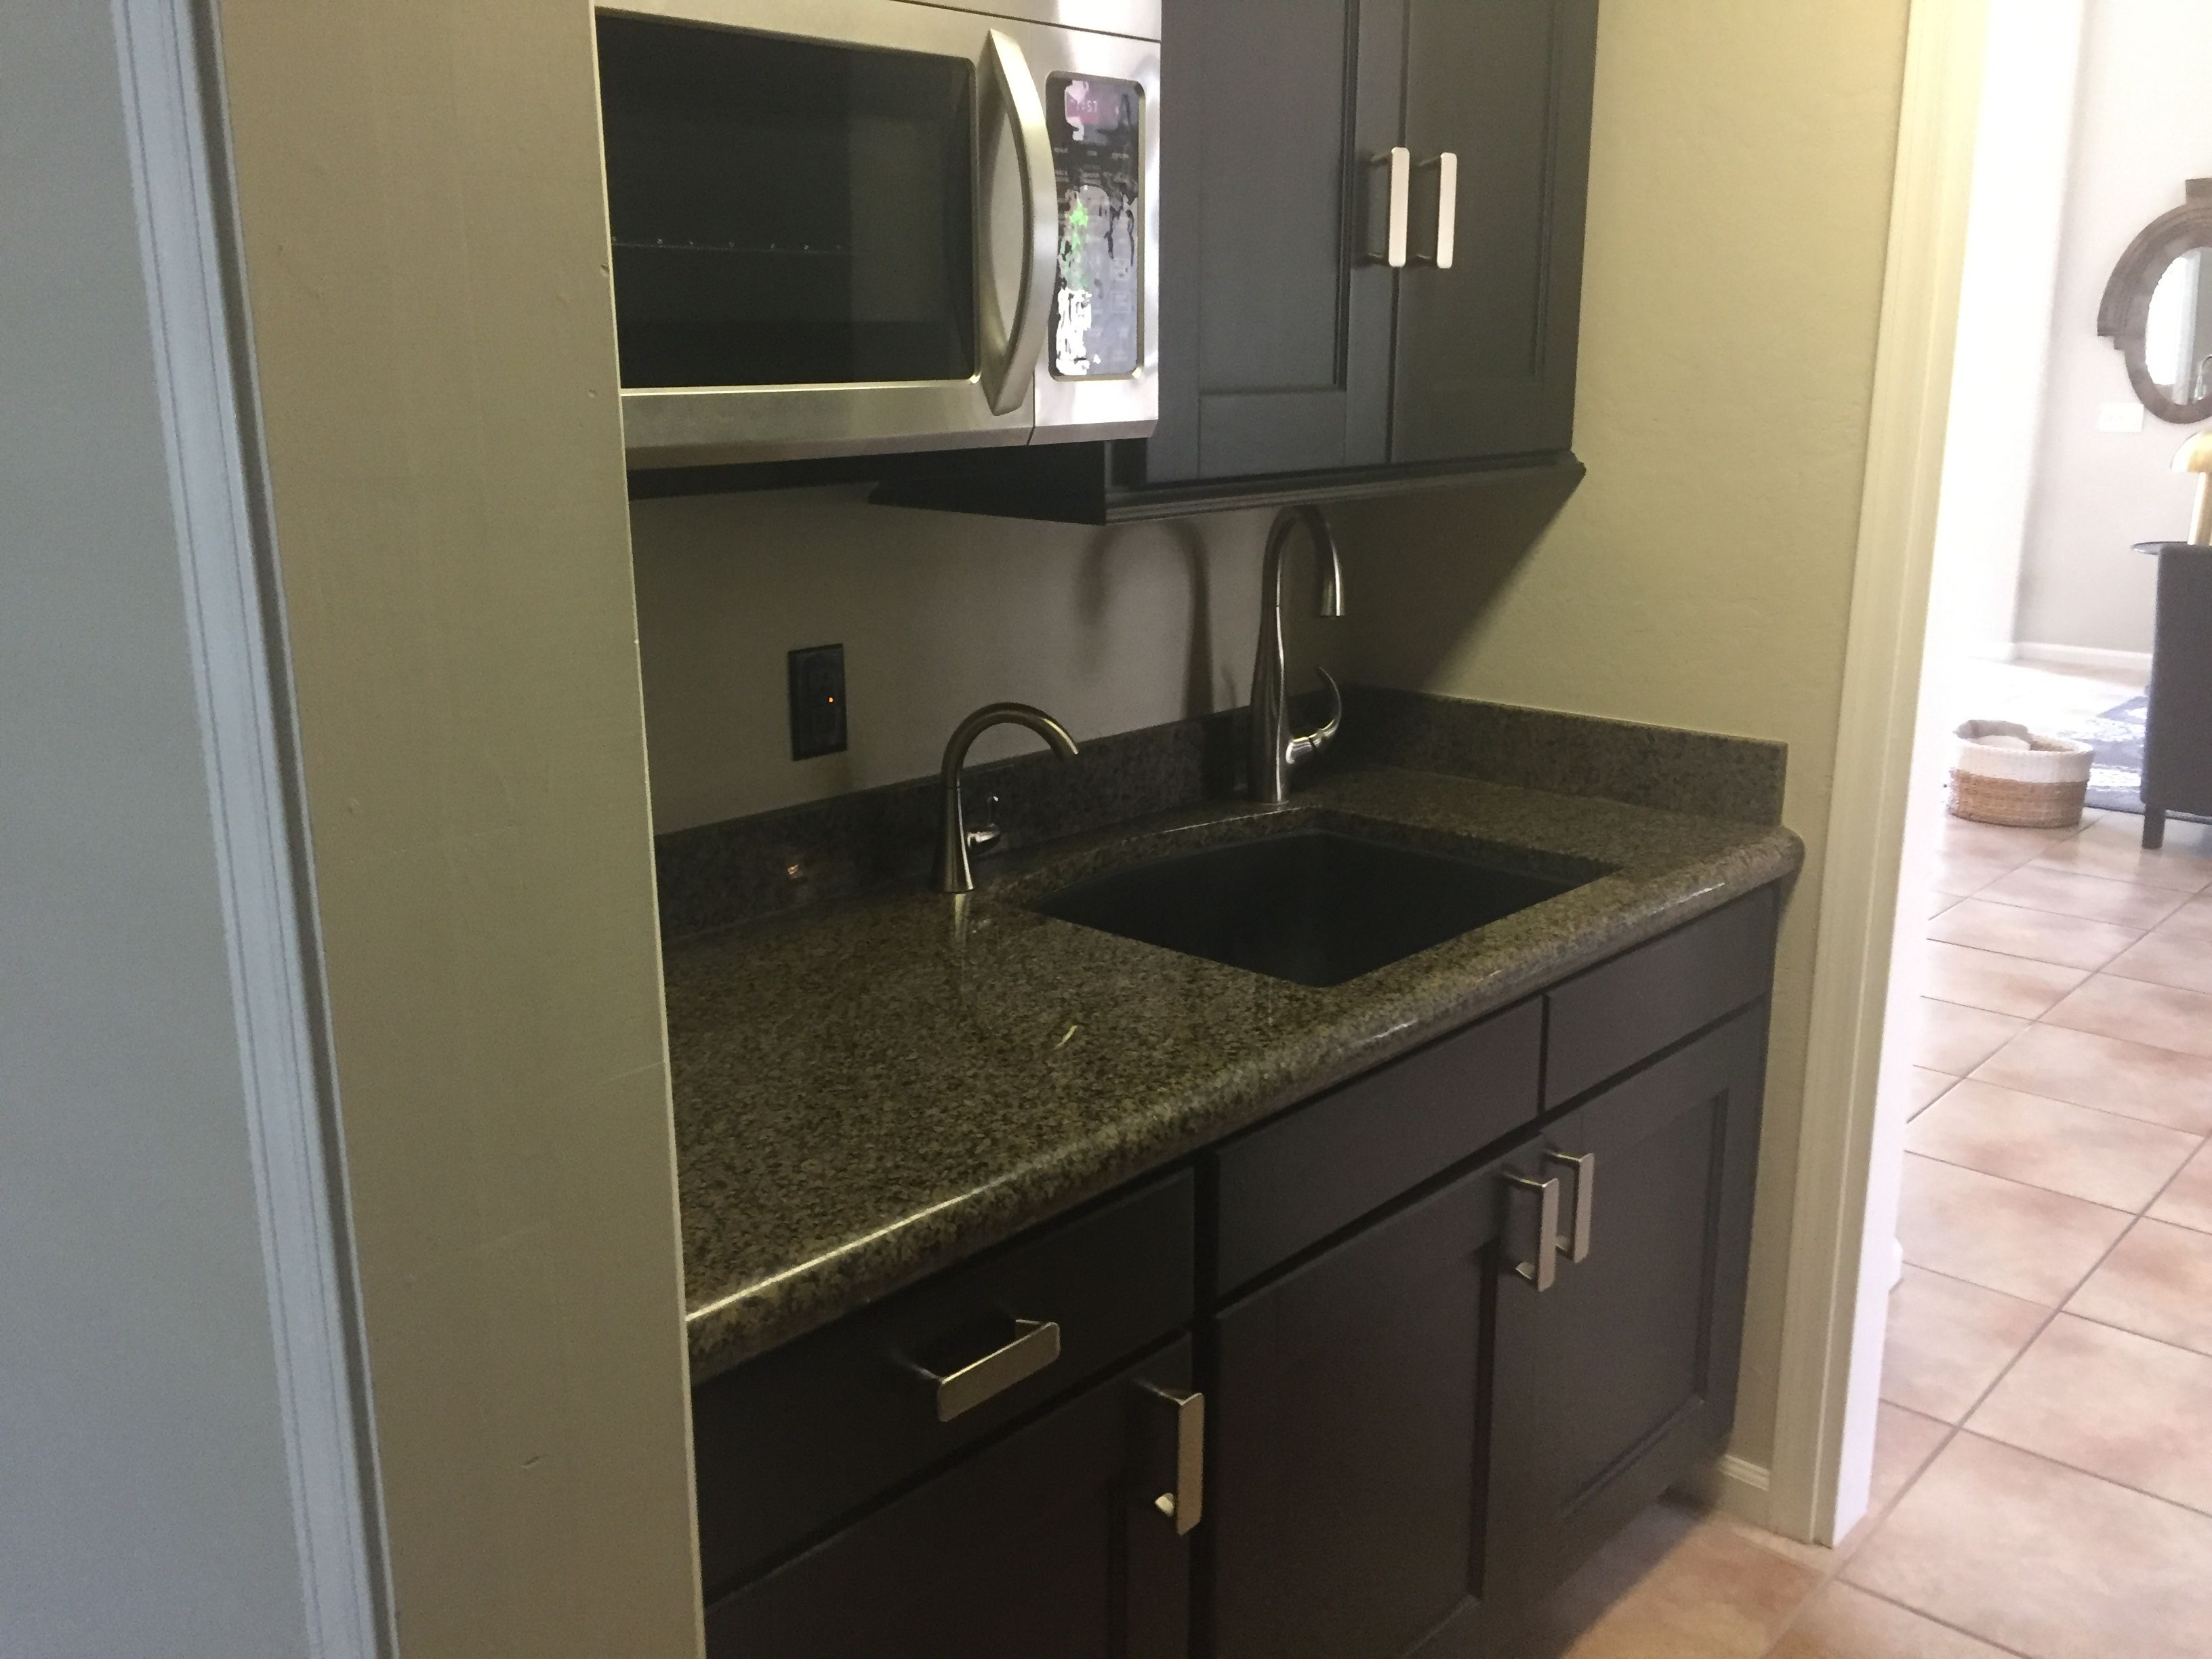 Idea For A Small Kitchenette Area For Airbnb Option Small Kitchenette Airbnb Design Kitchenette